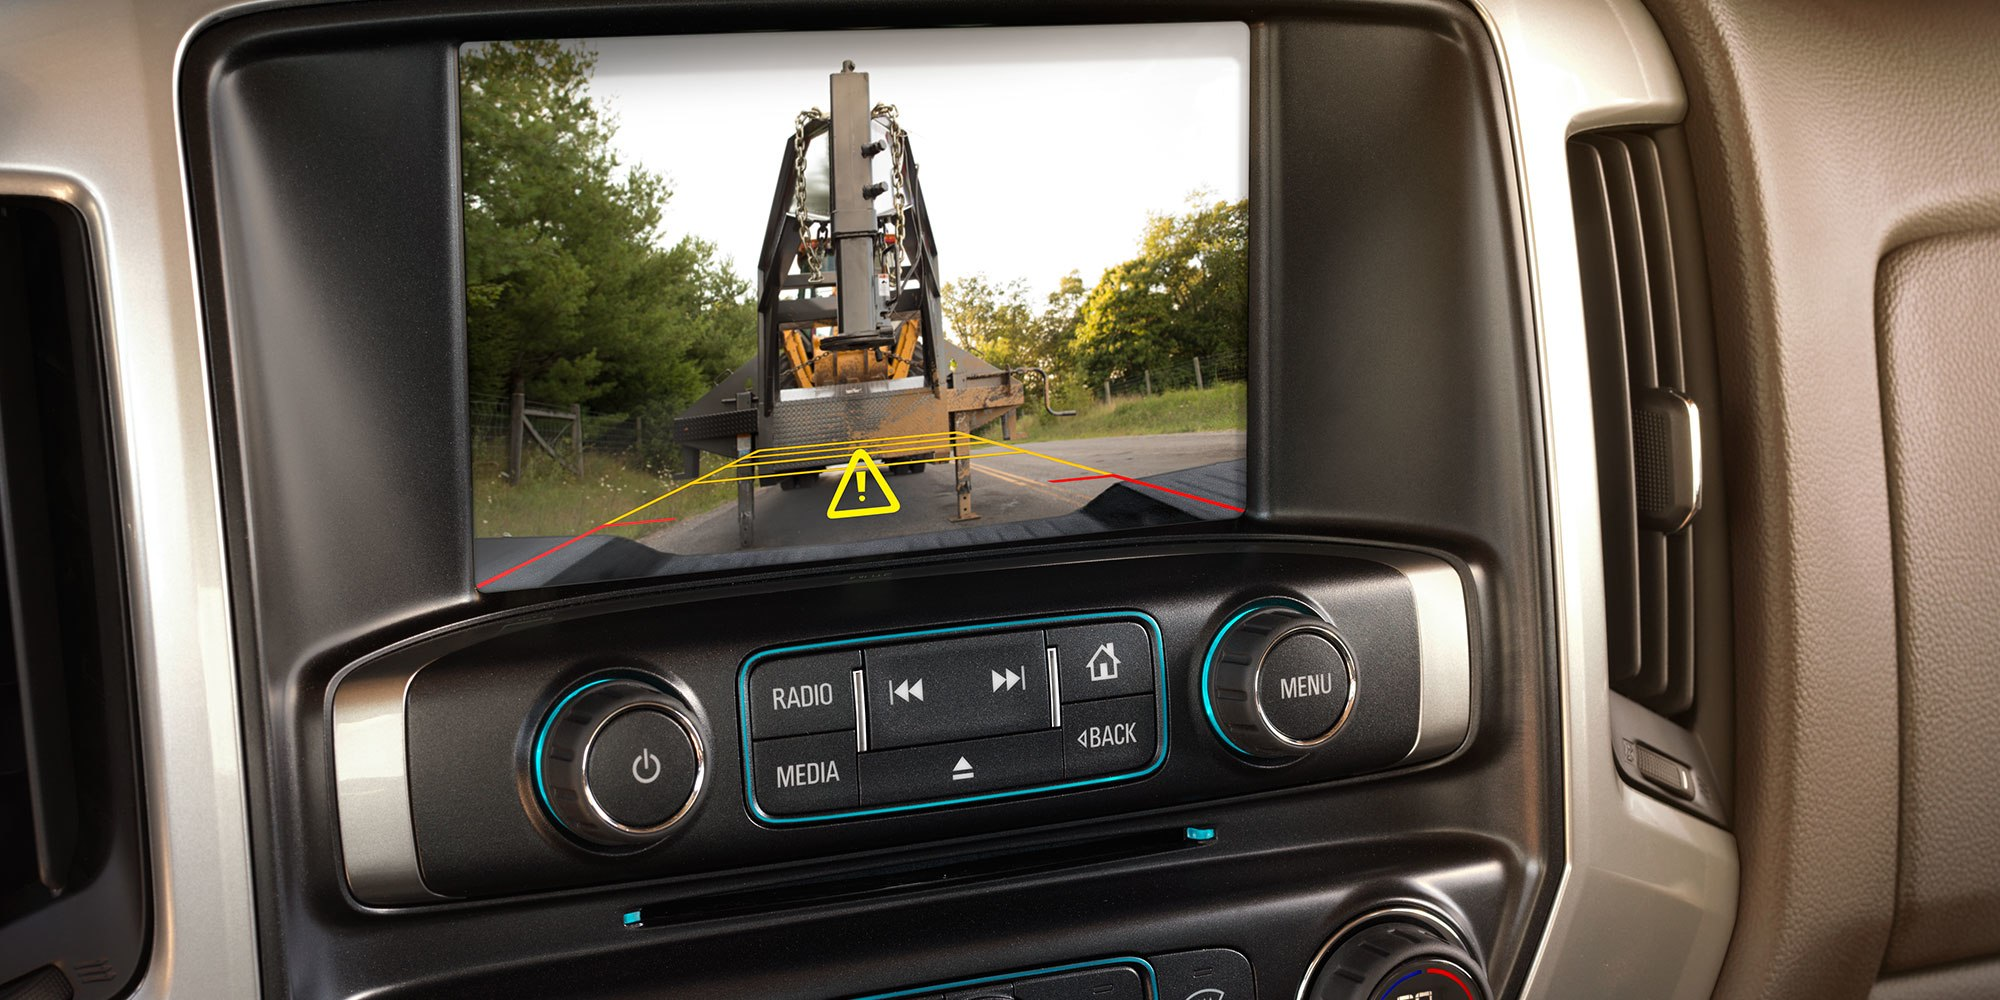 Reverse Safely with the Silverado 3500HD's Rear Vision Camera